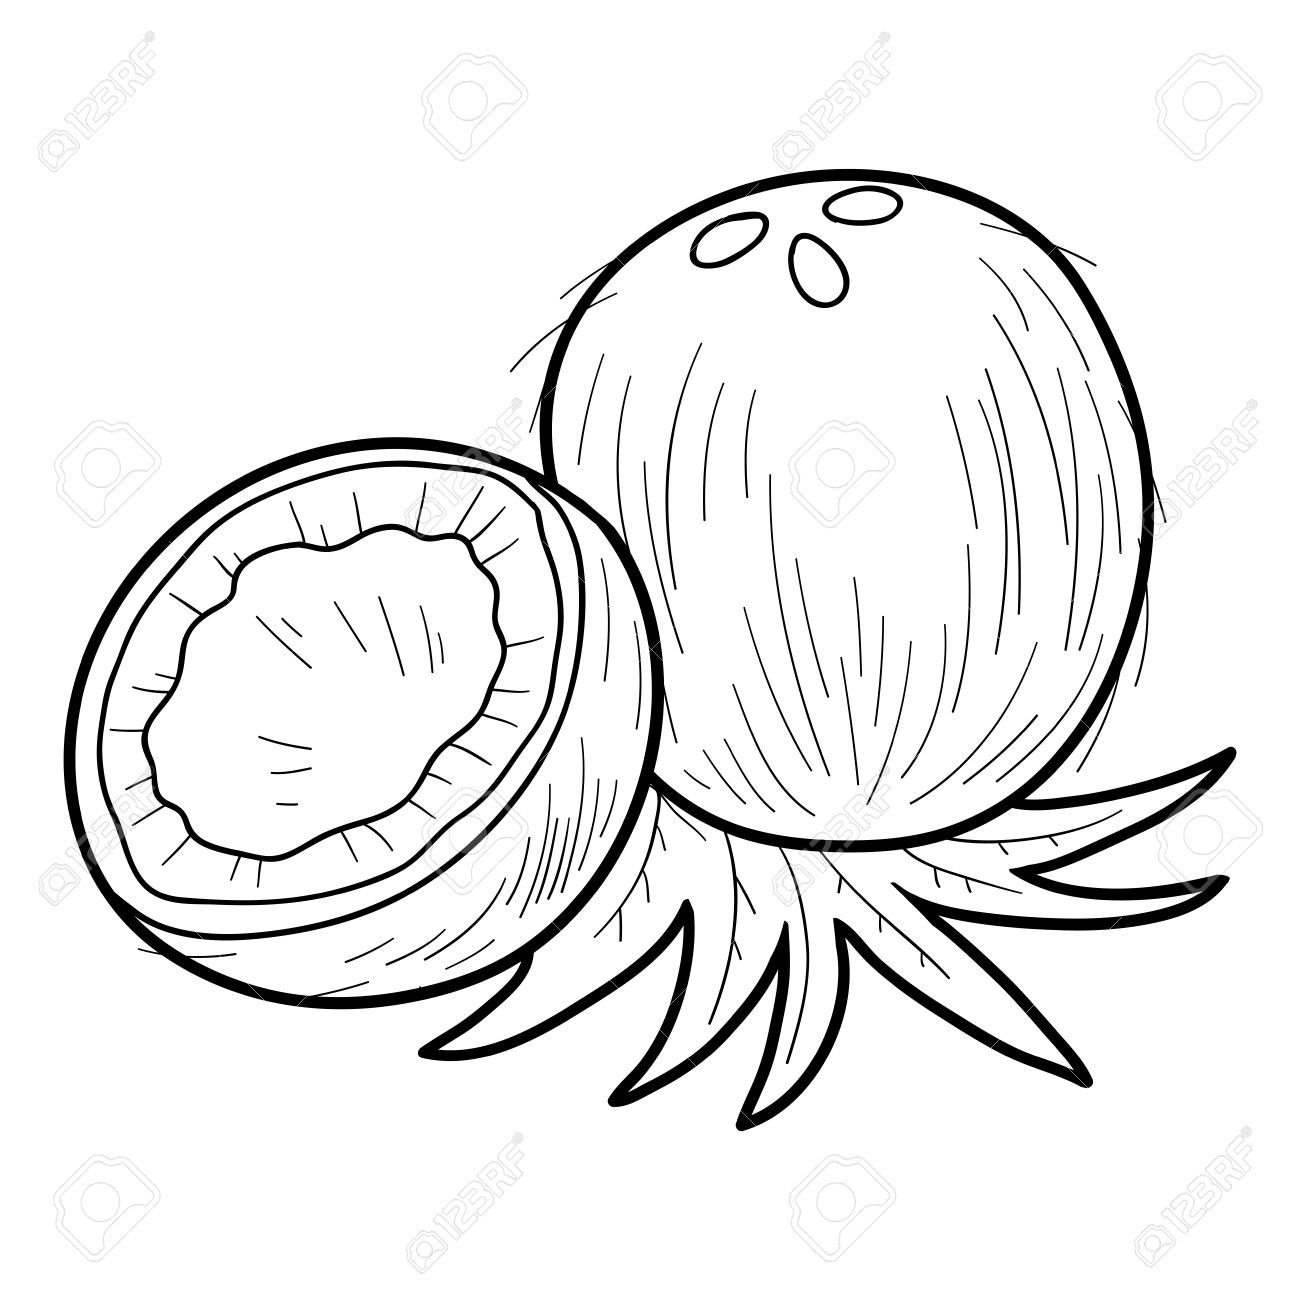 Coloring Book For Children Fruits And Vegetables Coconut Stock Vector